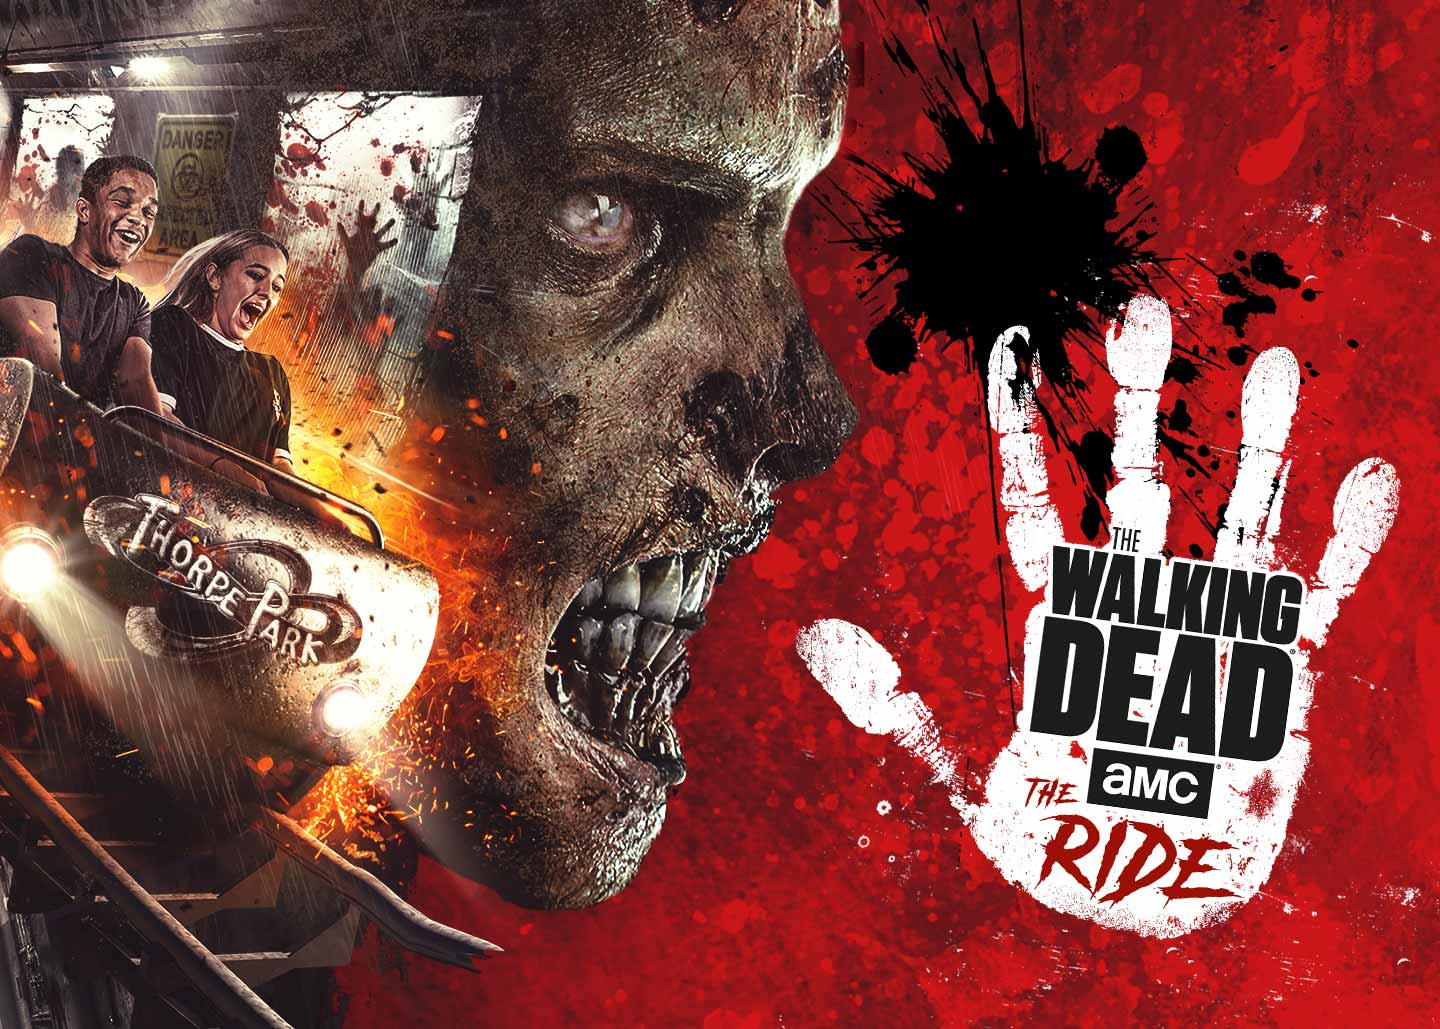 The Walking Dead: The Ride at Thorpe Park Resort